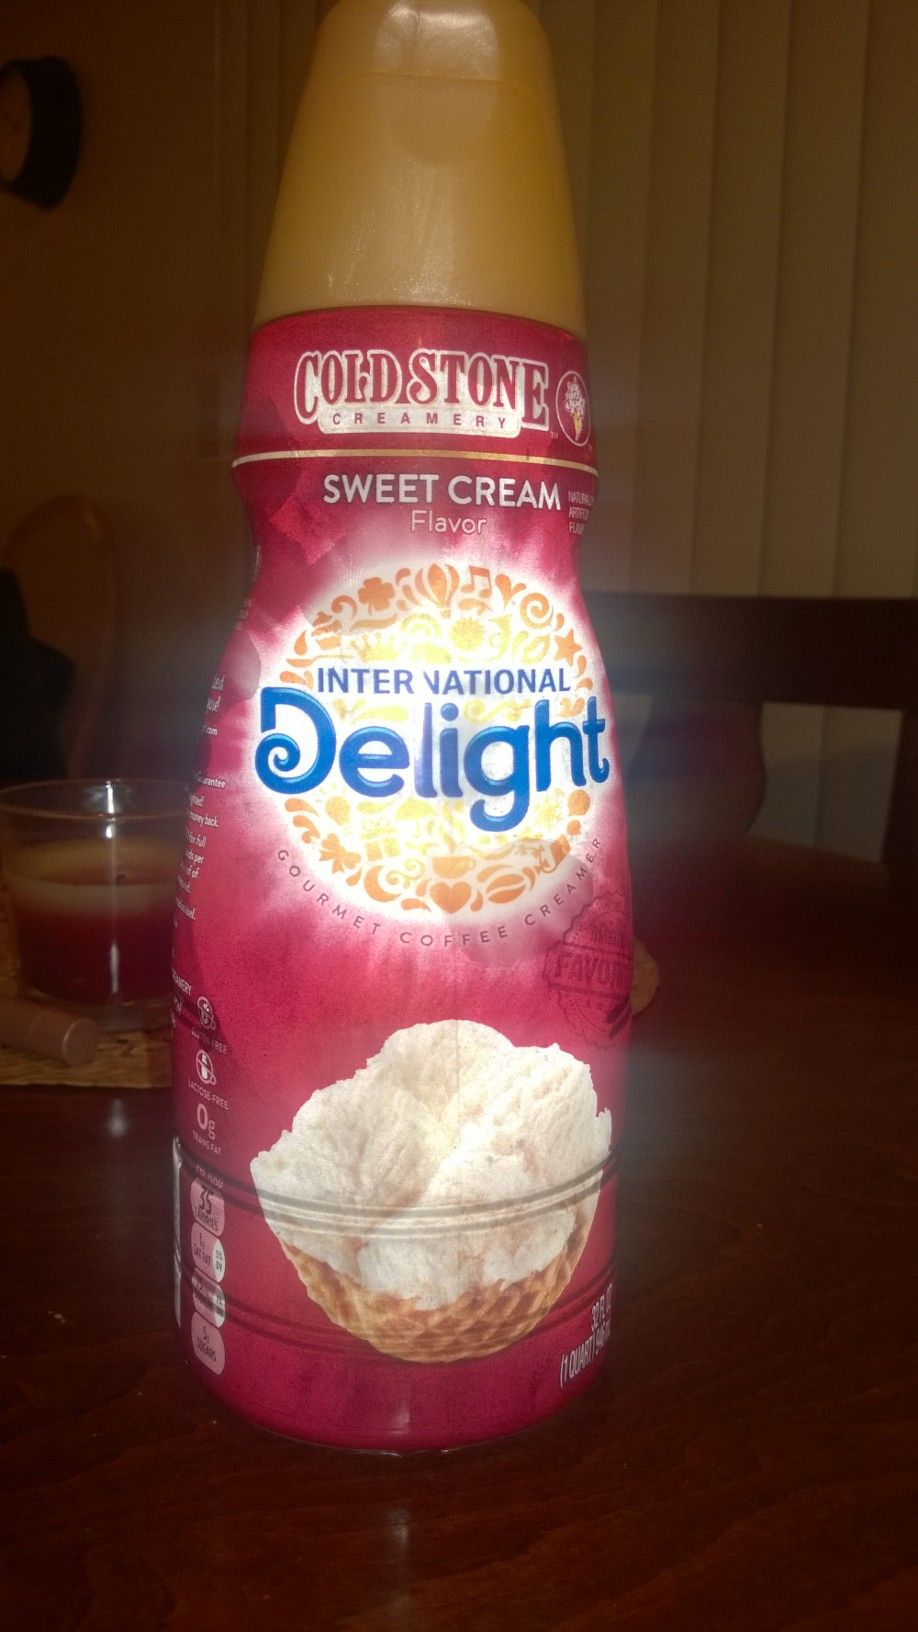 Cold Stone Creamery Sweet Cream International Delight's Coffee Creamer! Perfect sweetness! Love it! #GotItFree #HolidayDelight